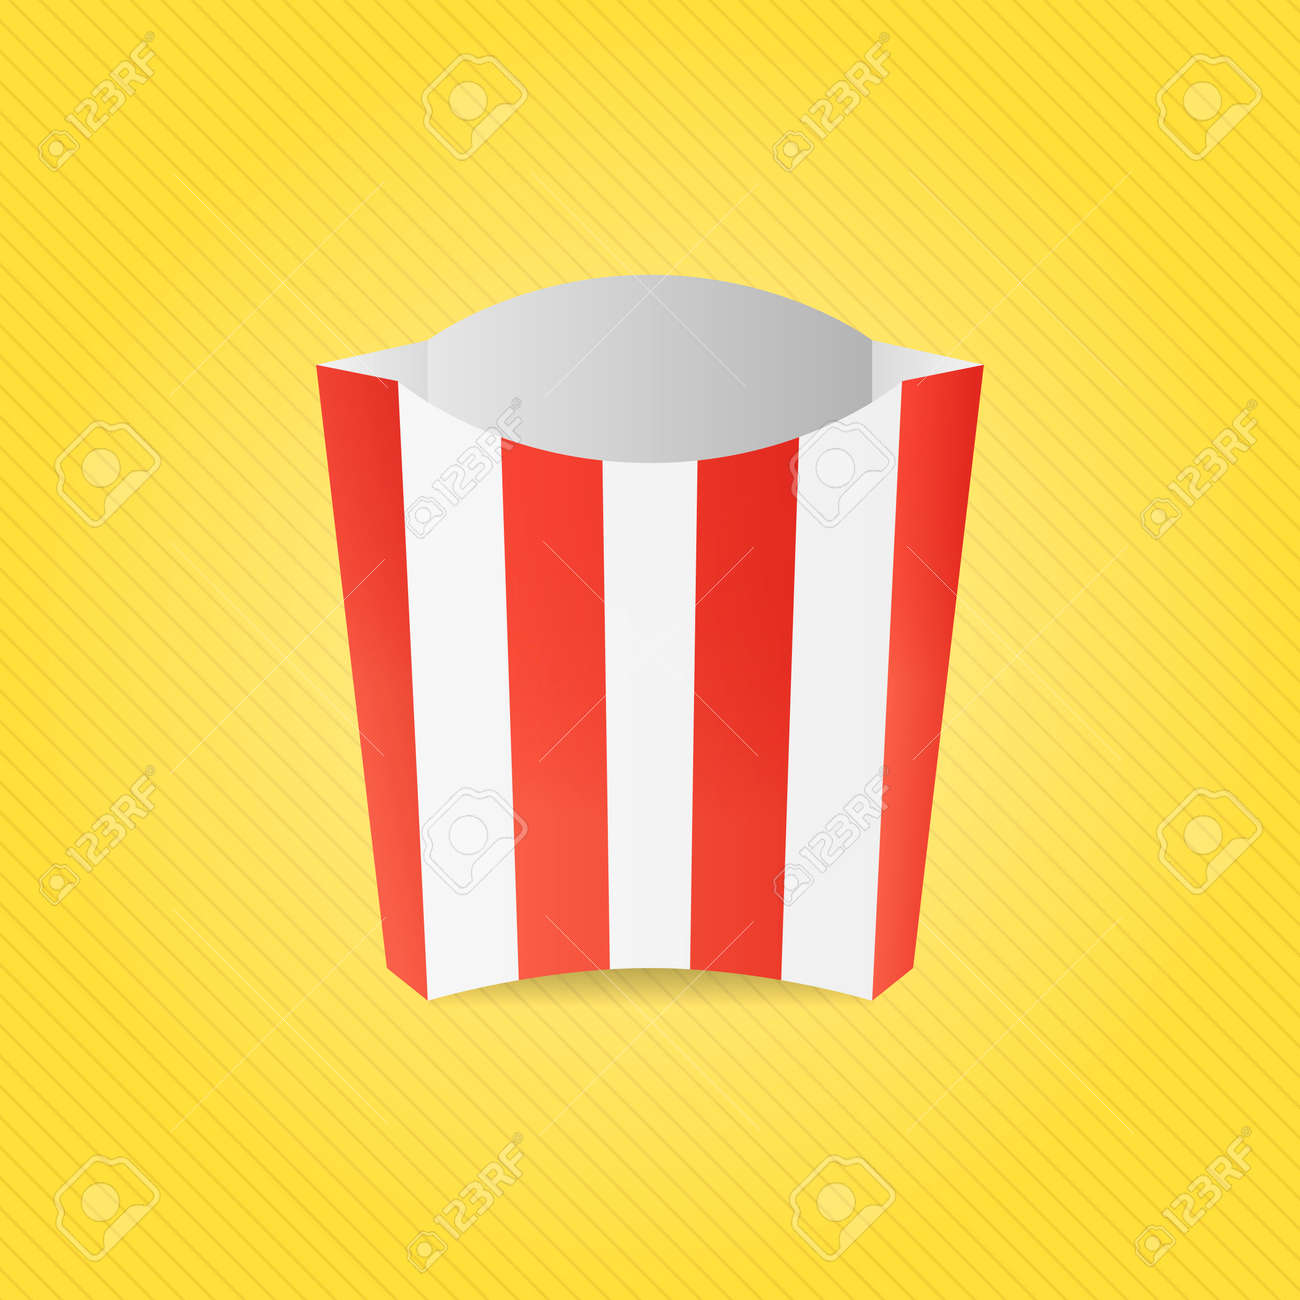 Realistic French Fries Red And White Striped Paper Box Mock Up Template Of Container